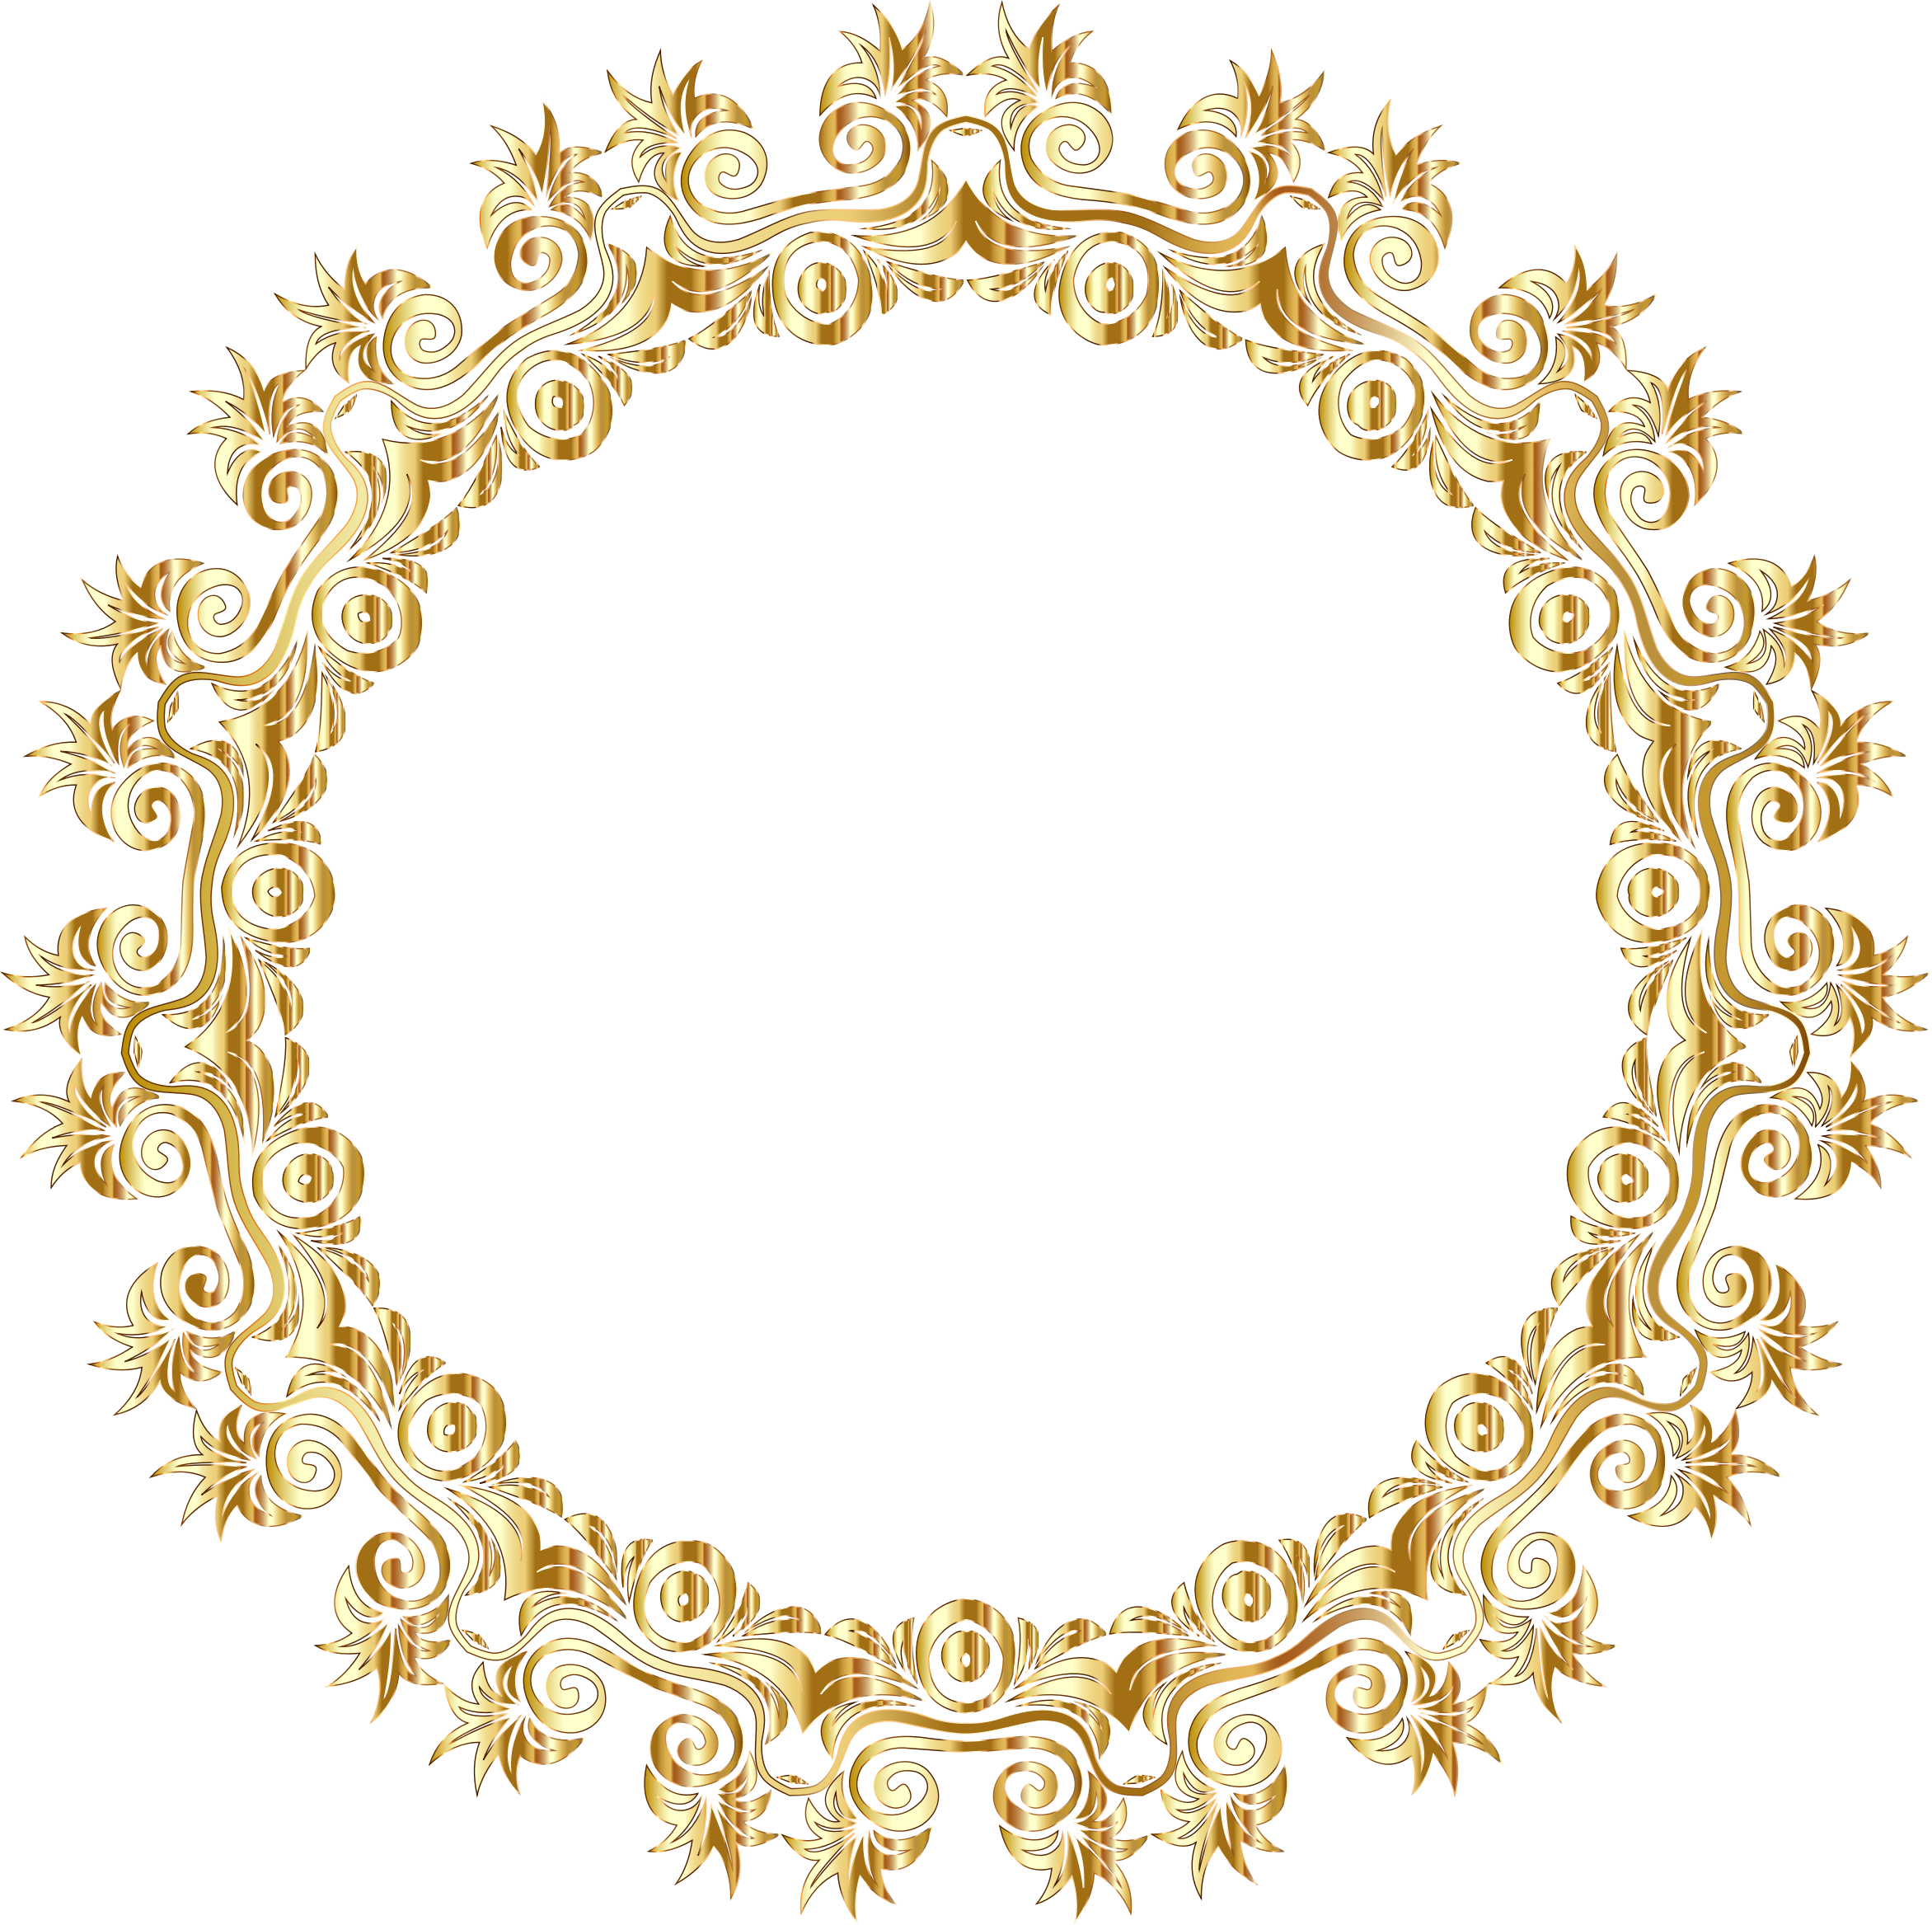 Gold flourish motif frame. Circle clipart floral